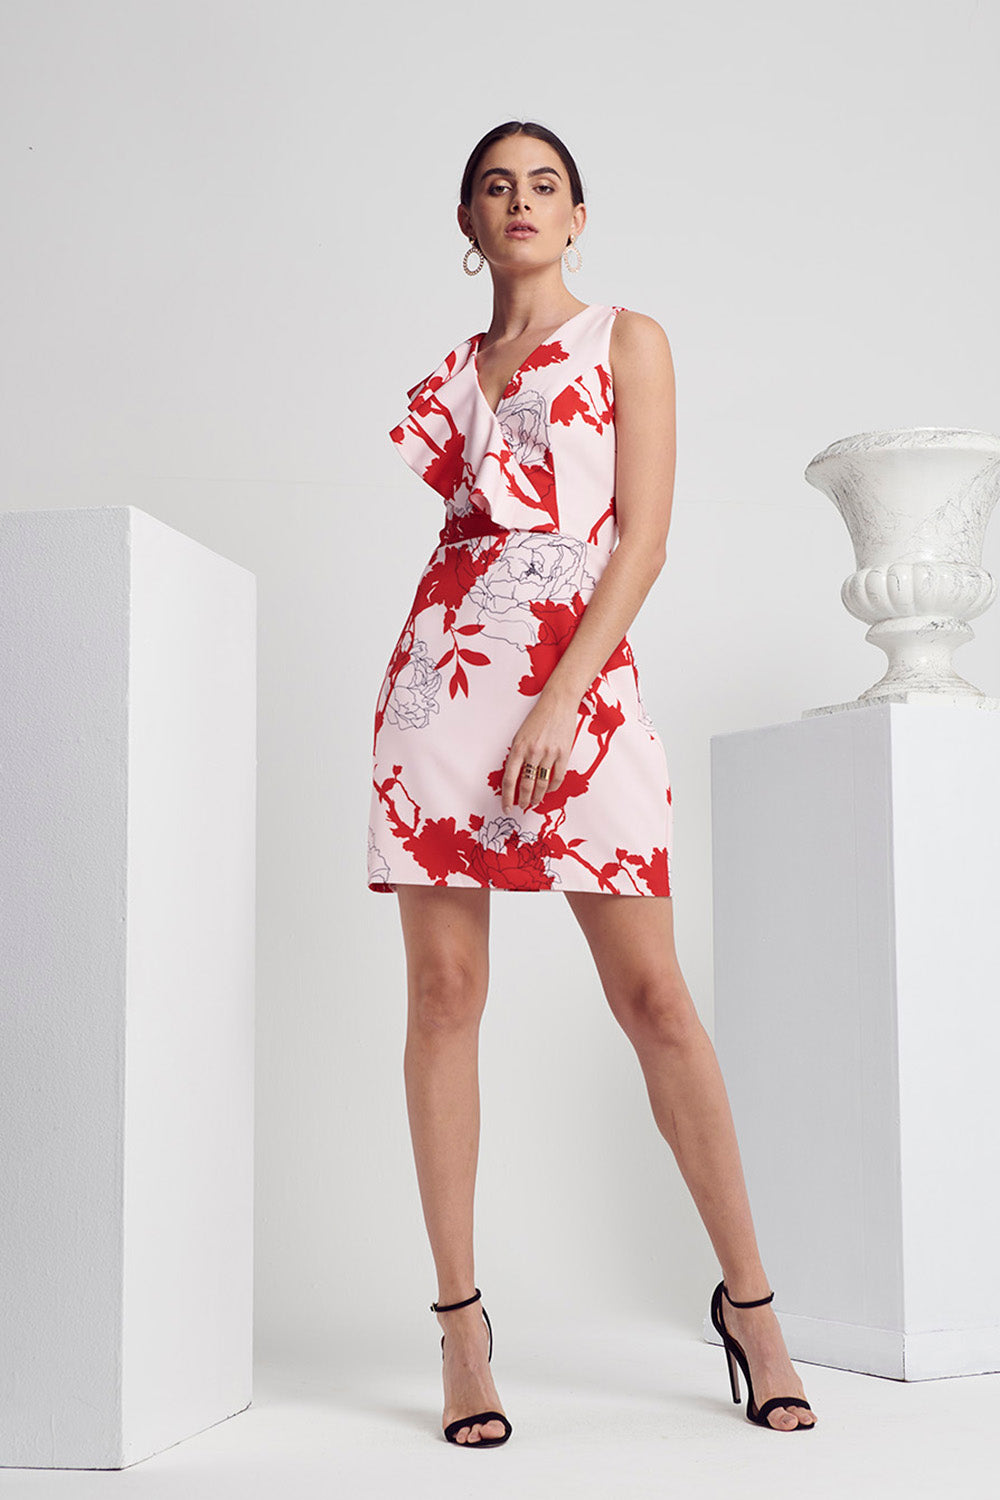 CALIBRE FLORAL DRESS